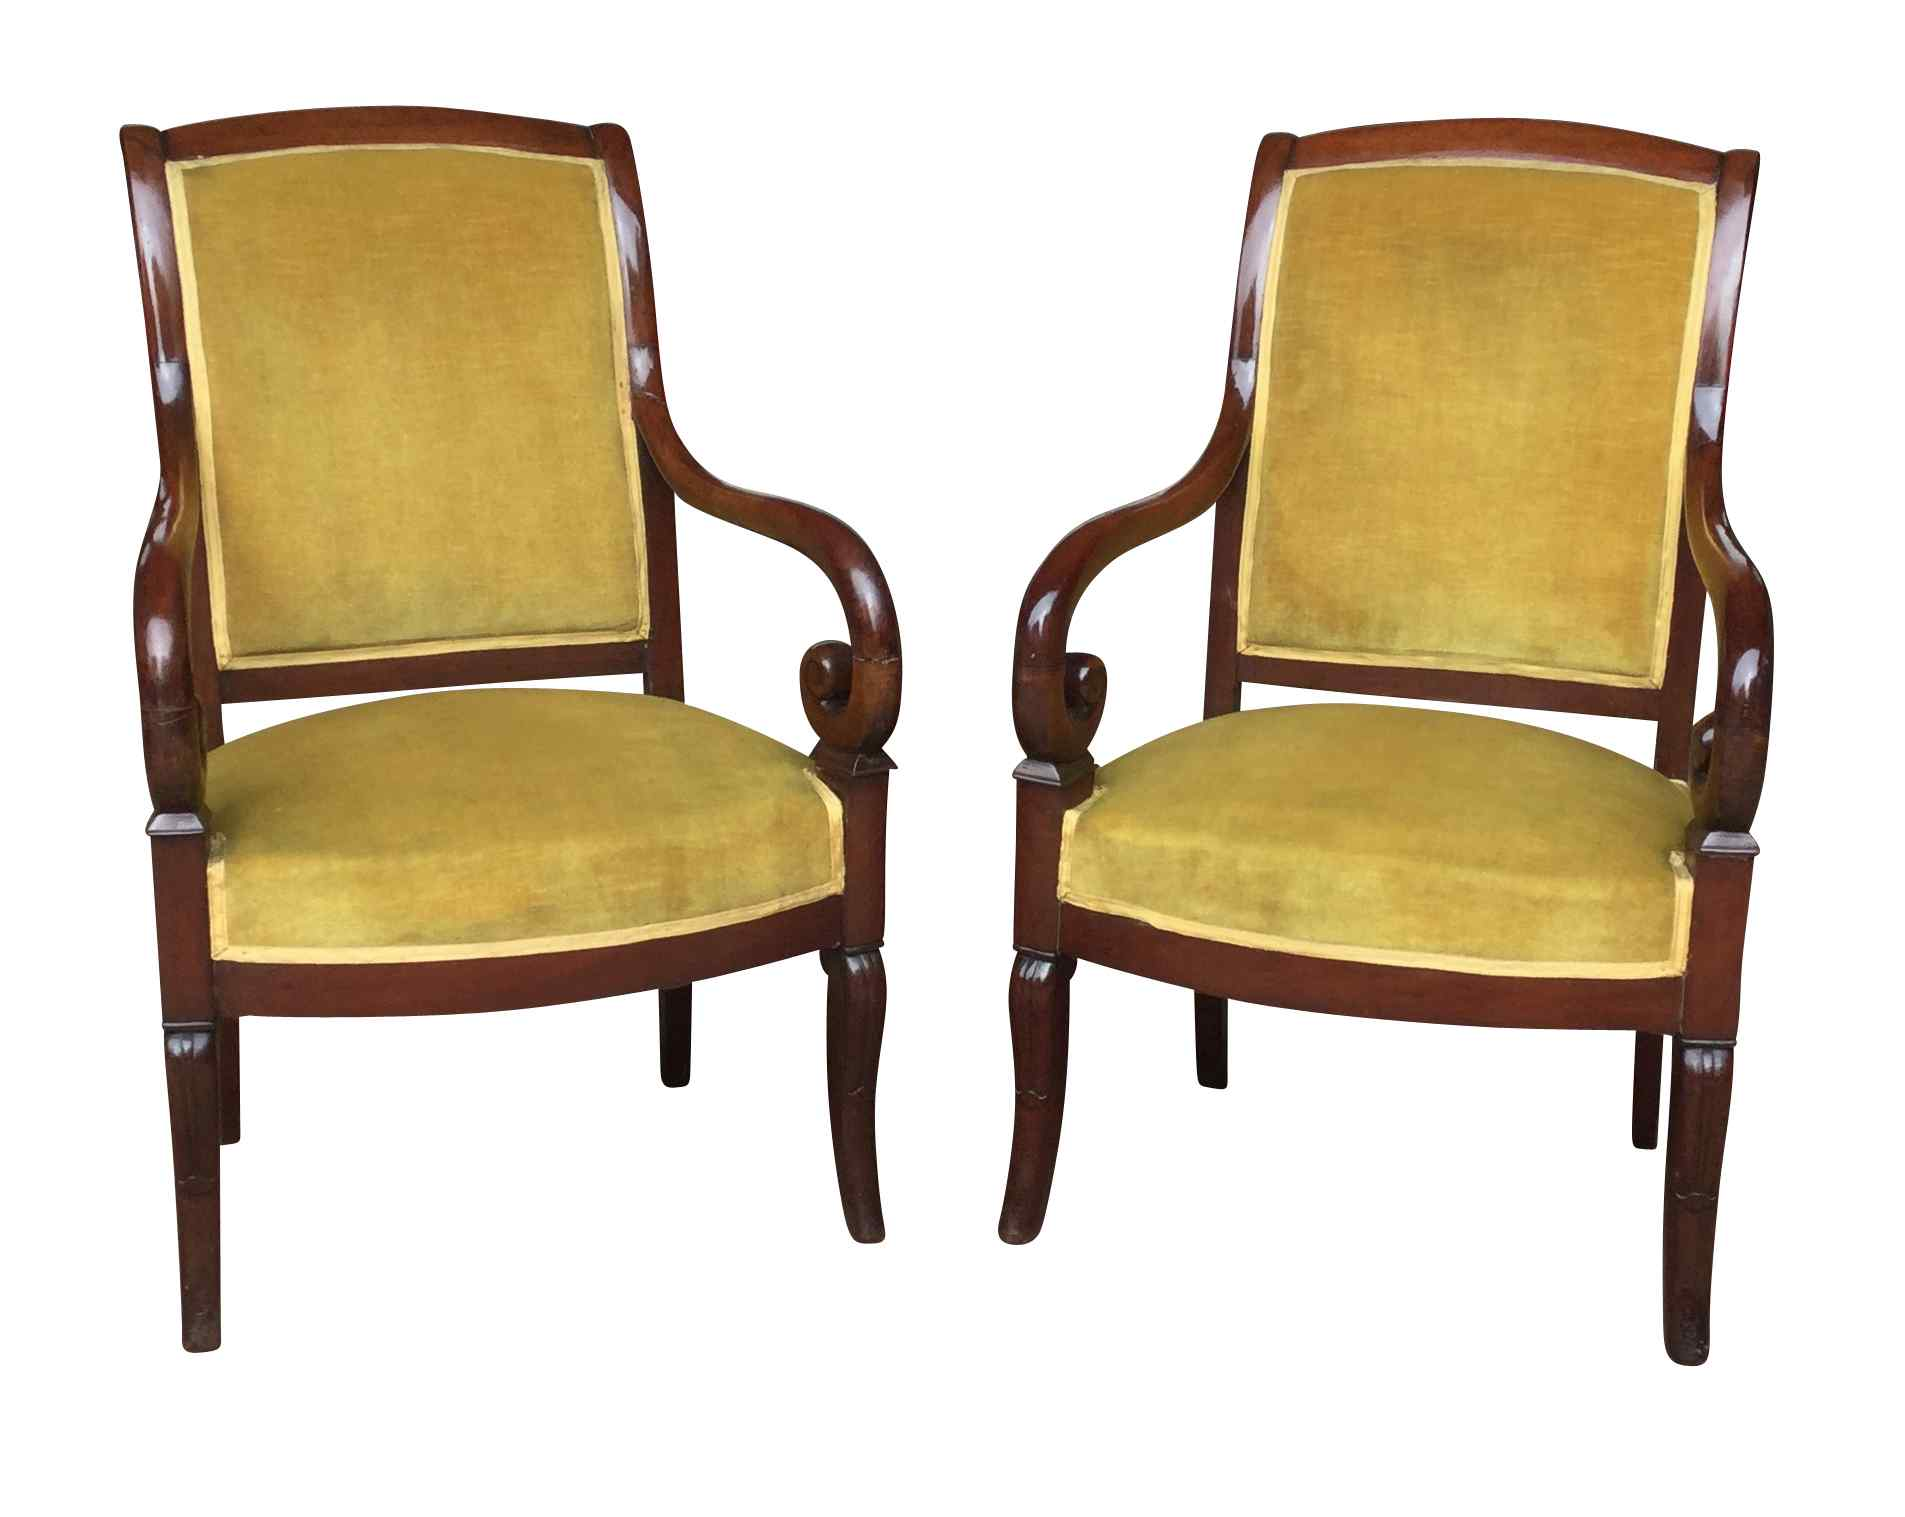 Pair of Mahogany Restoration period armchairs